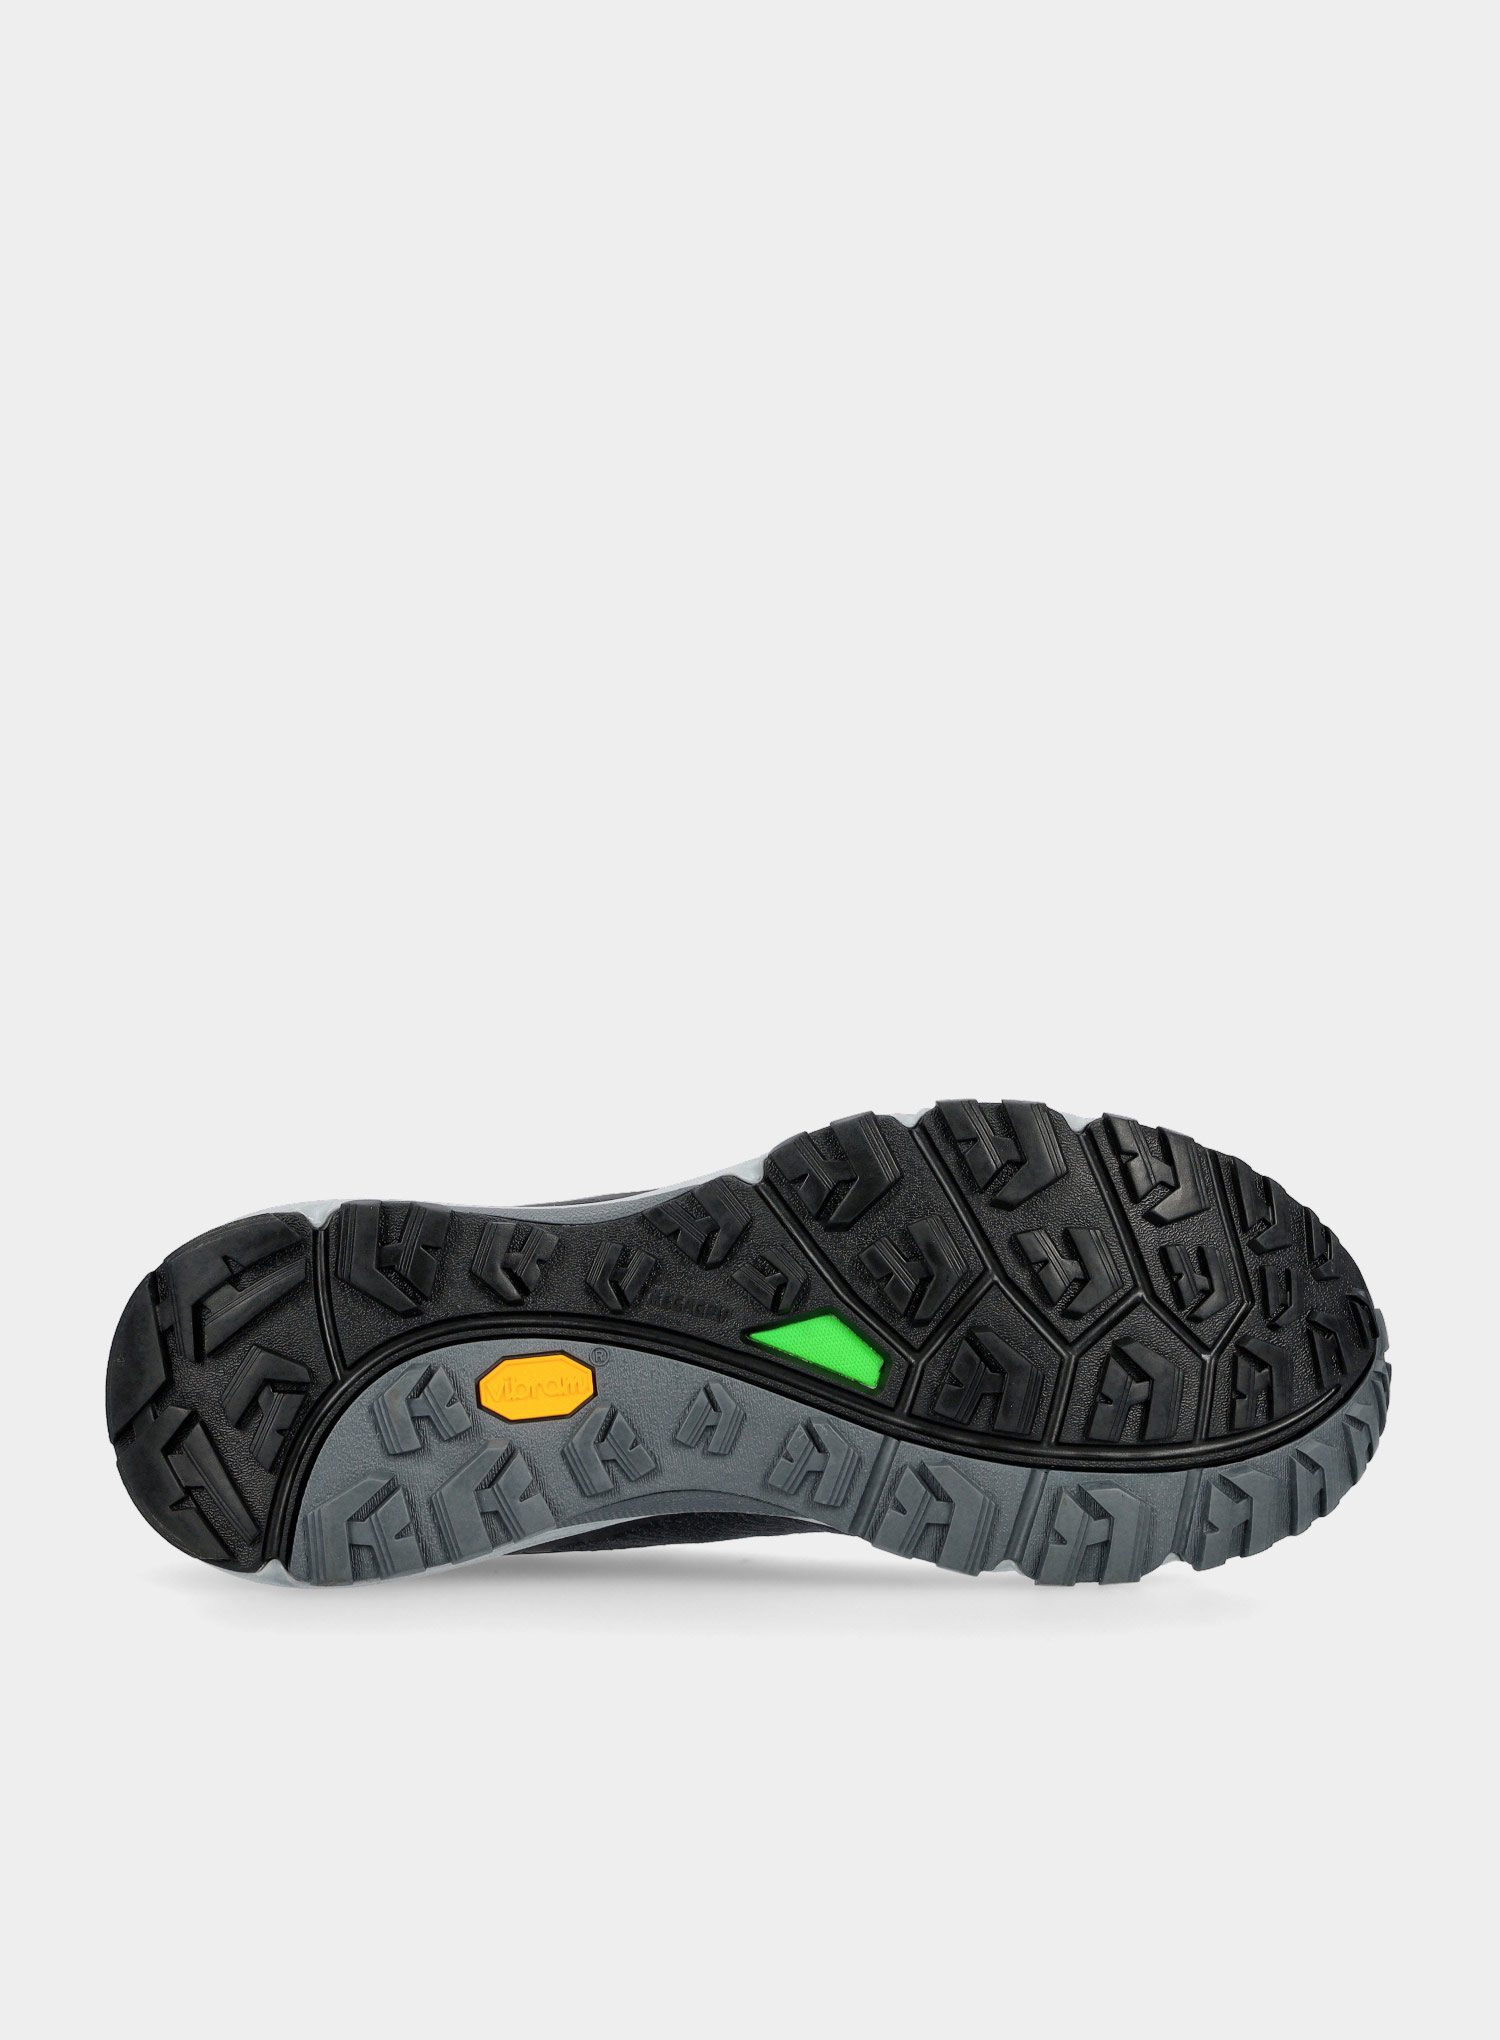 Buty The North Face Ultra Fastpack IV FutureLight - grey - zdjęcie nr. 2